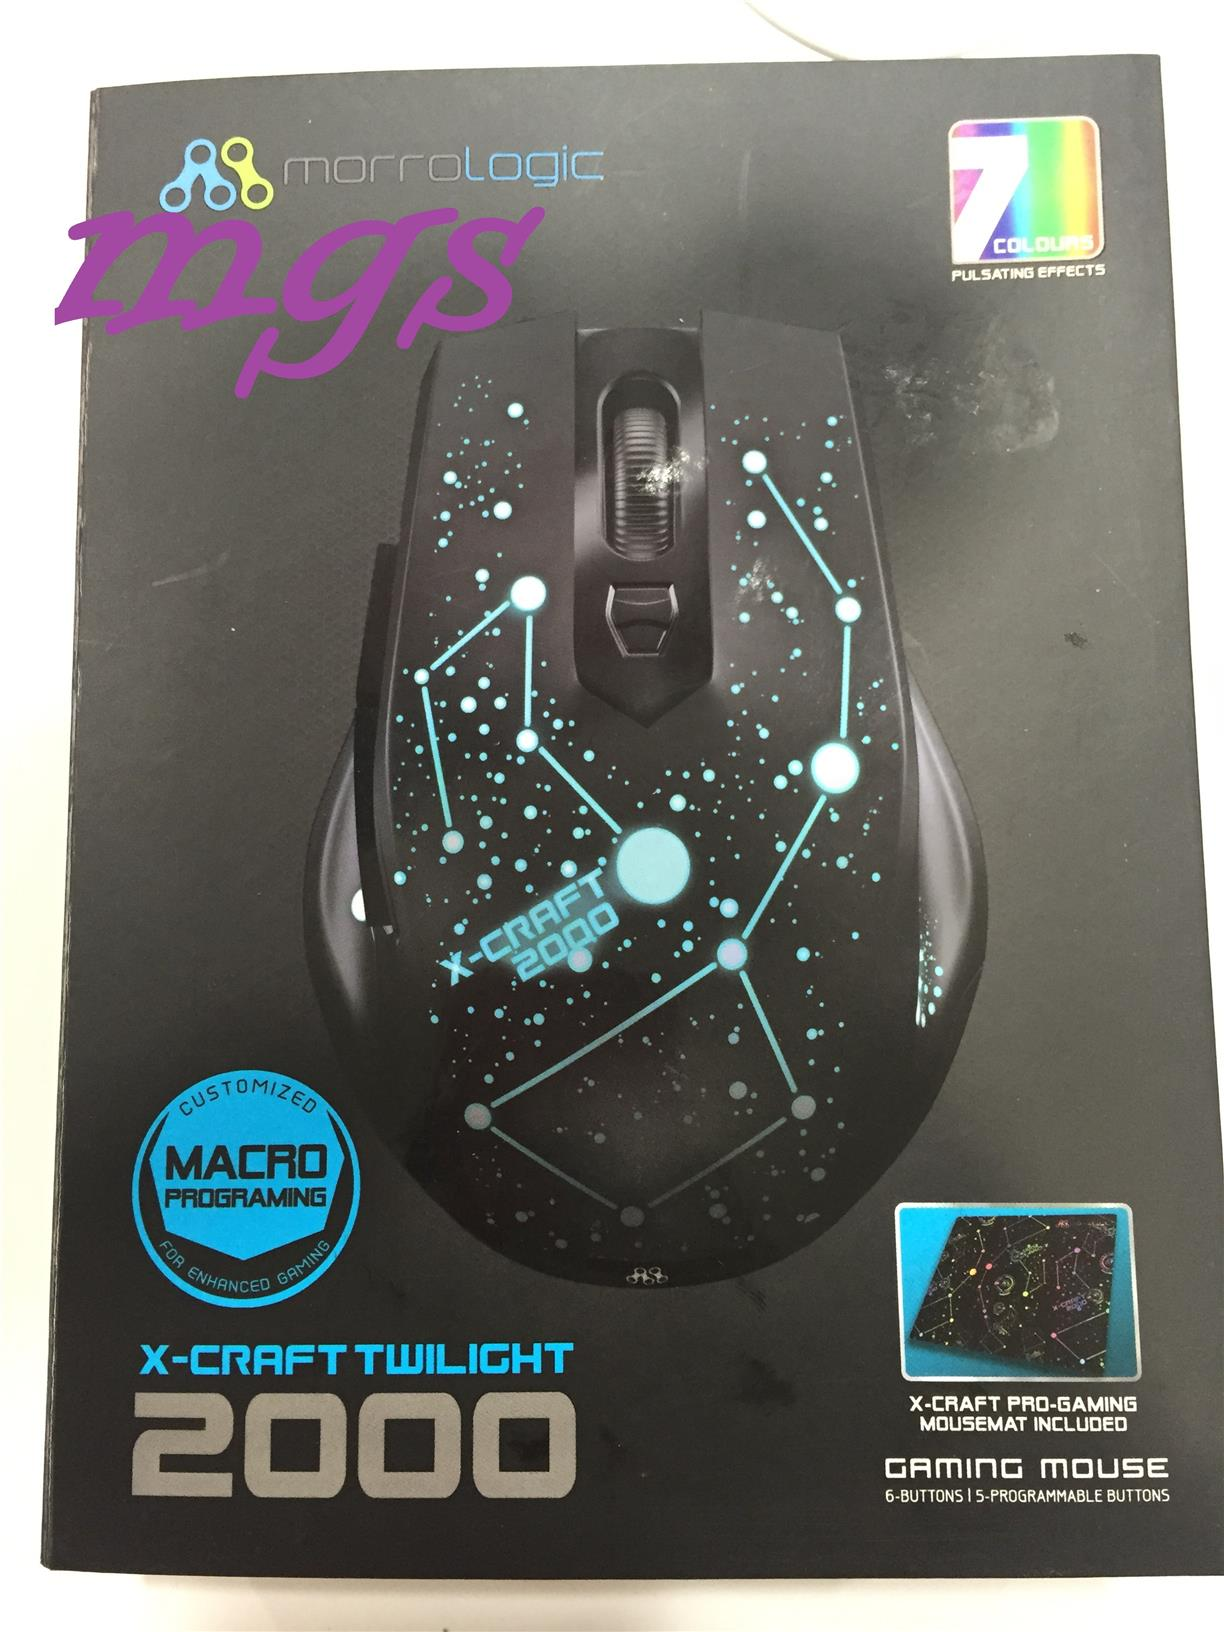 Power Logic X-Craft Twilight 2000 Gaming Mouse